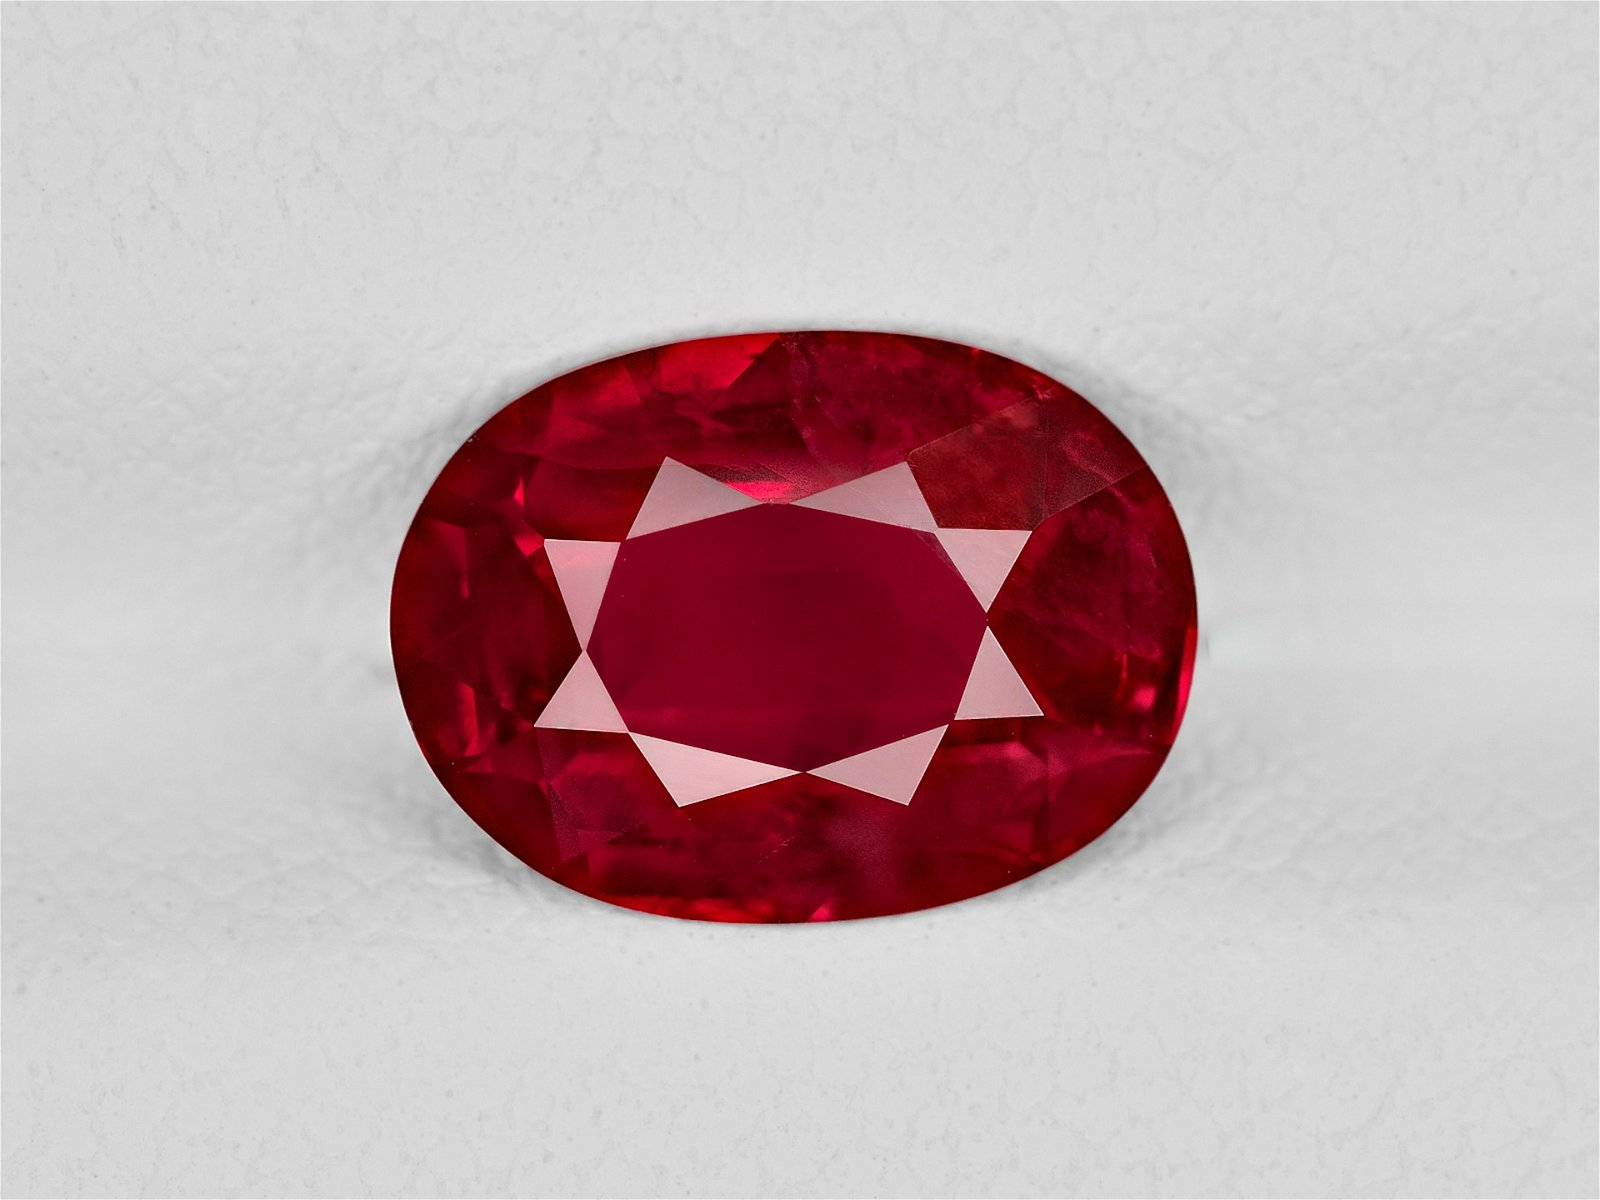 Ruby, 2.31ct, Mined in Tanzania, Certified by GRS